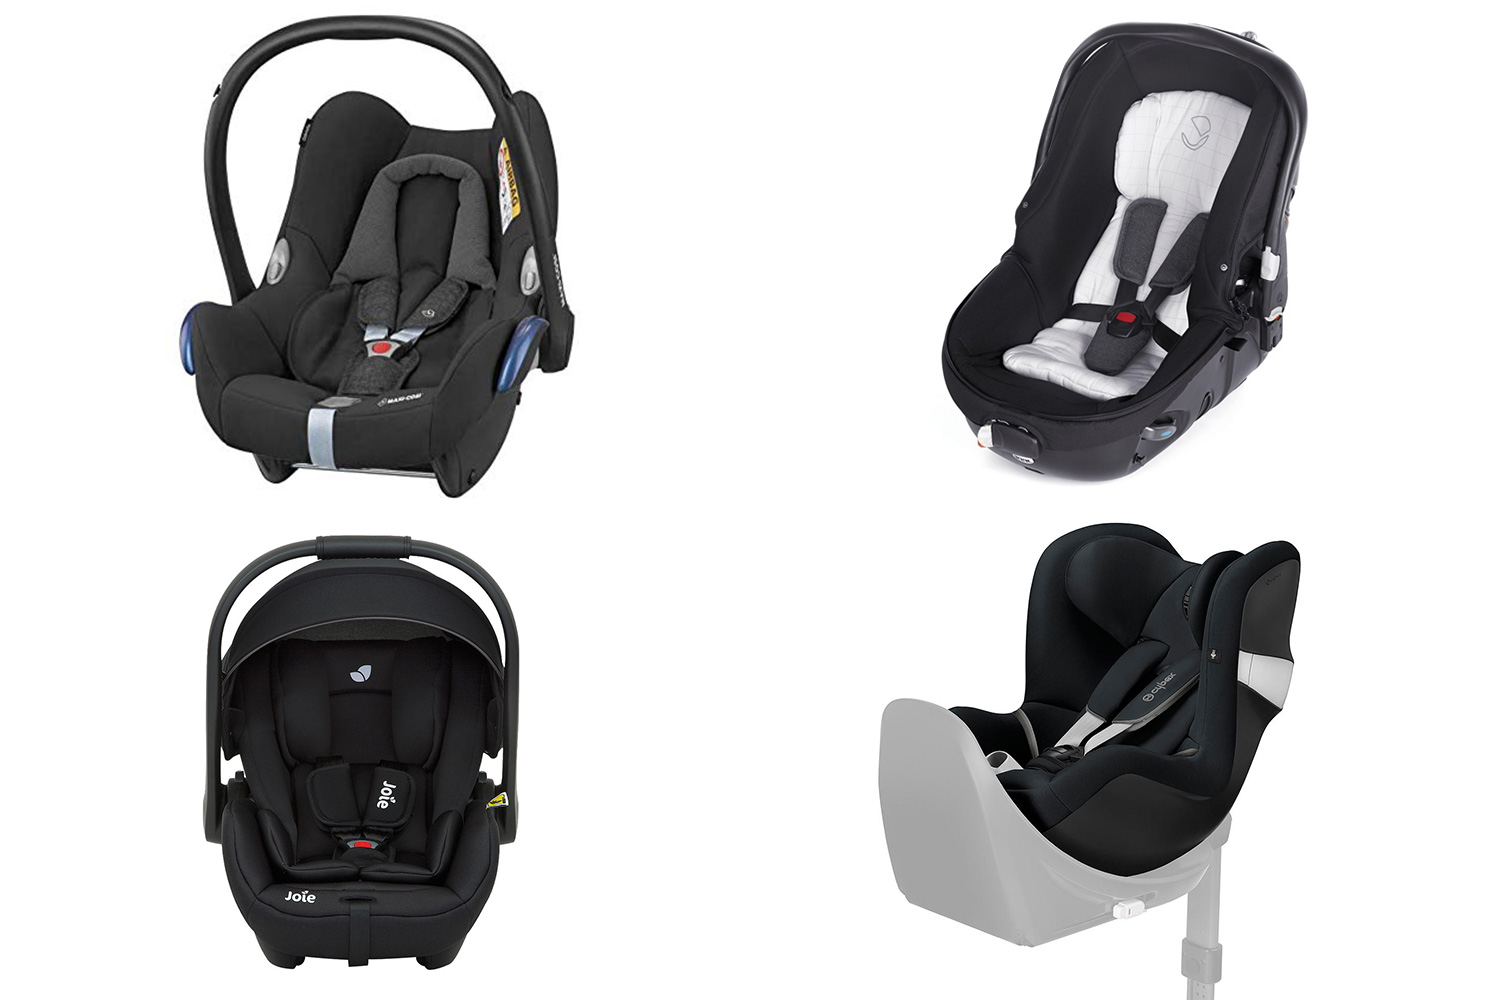 Joie Isofix Base Uk Best Newborn Car Seat 2019 The Sun Uk